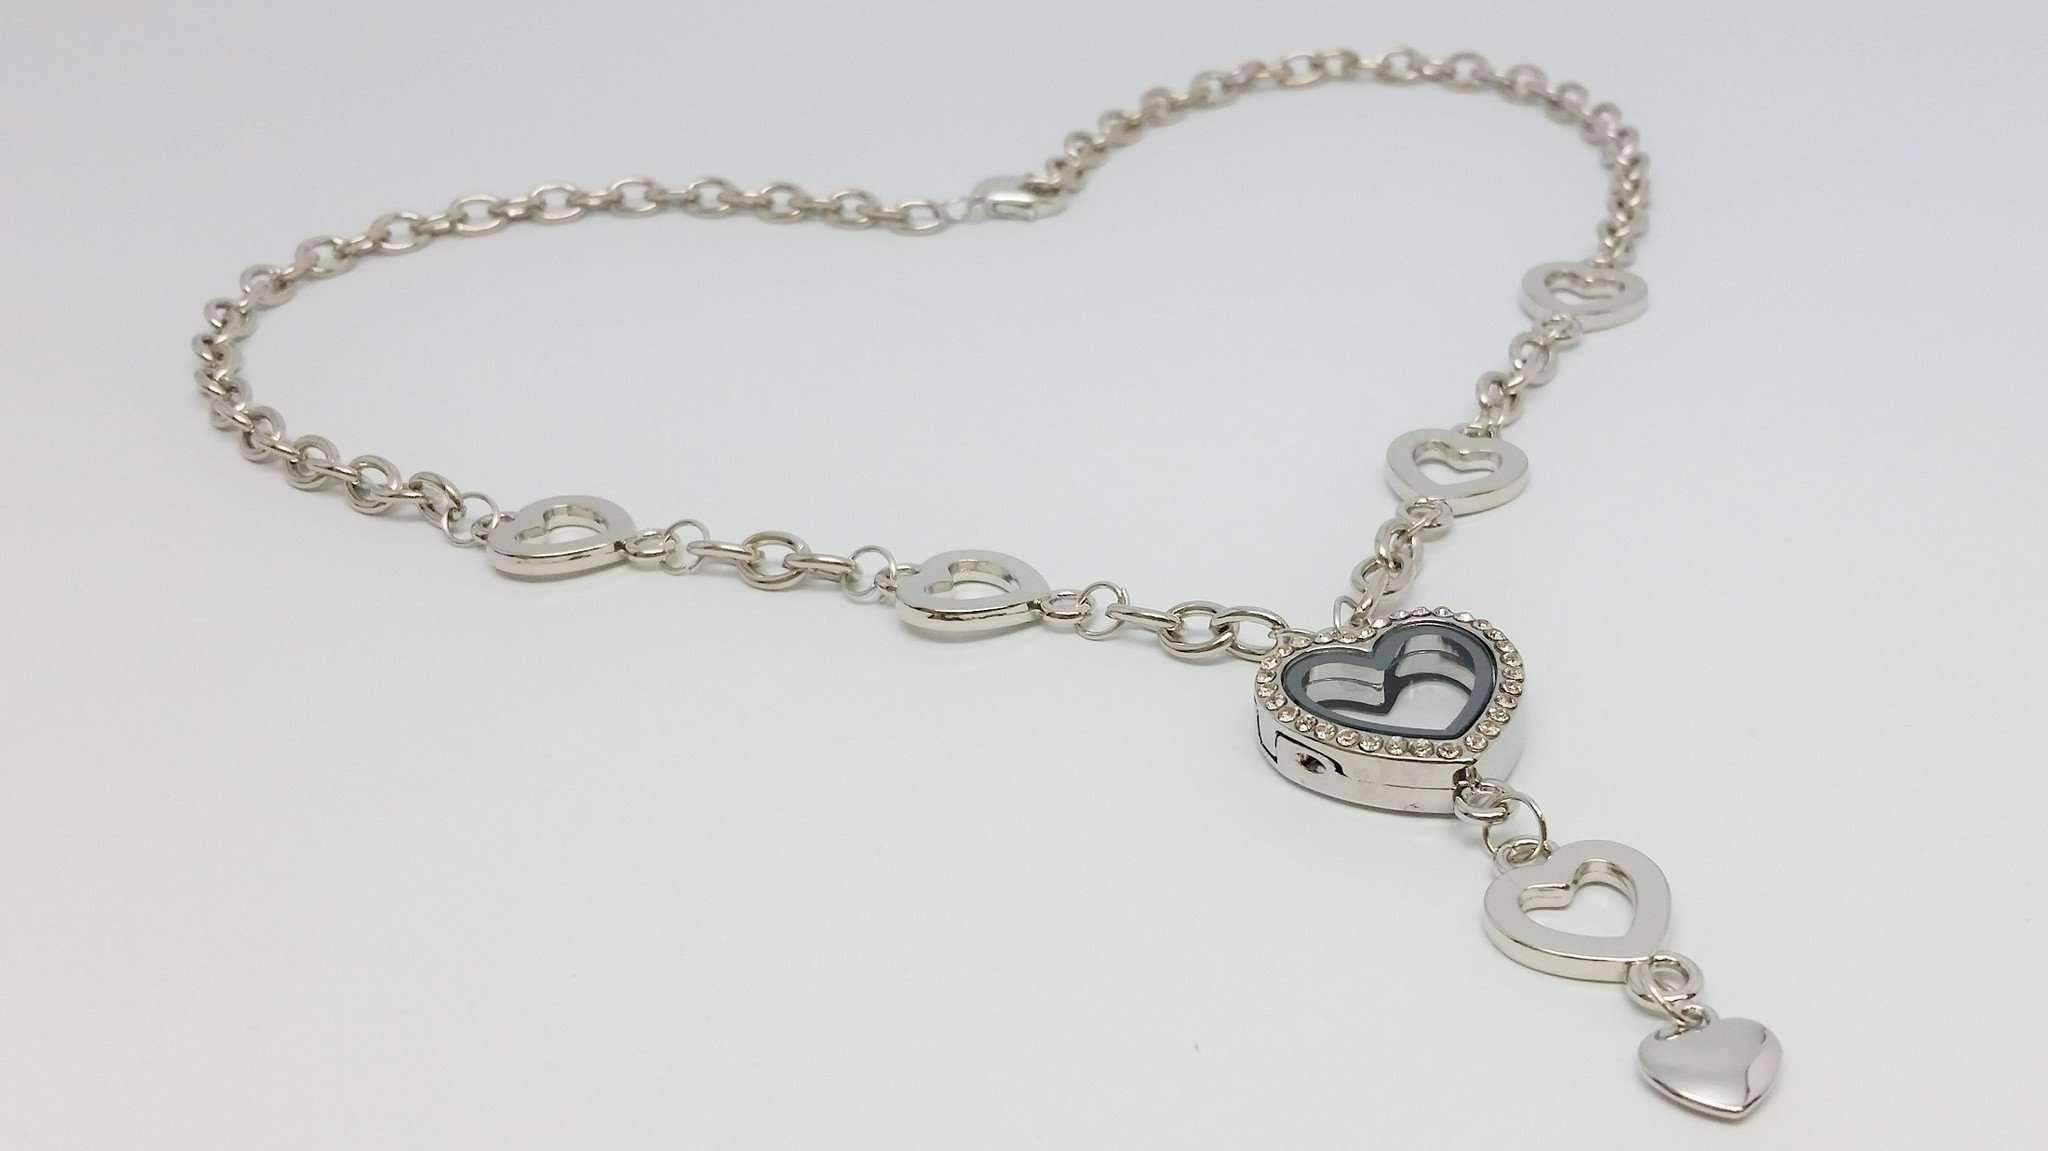 My Favorite Things Heart Shaped Charm Locket Necklace In